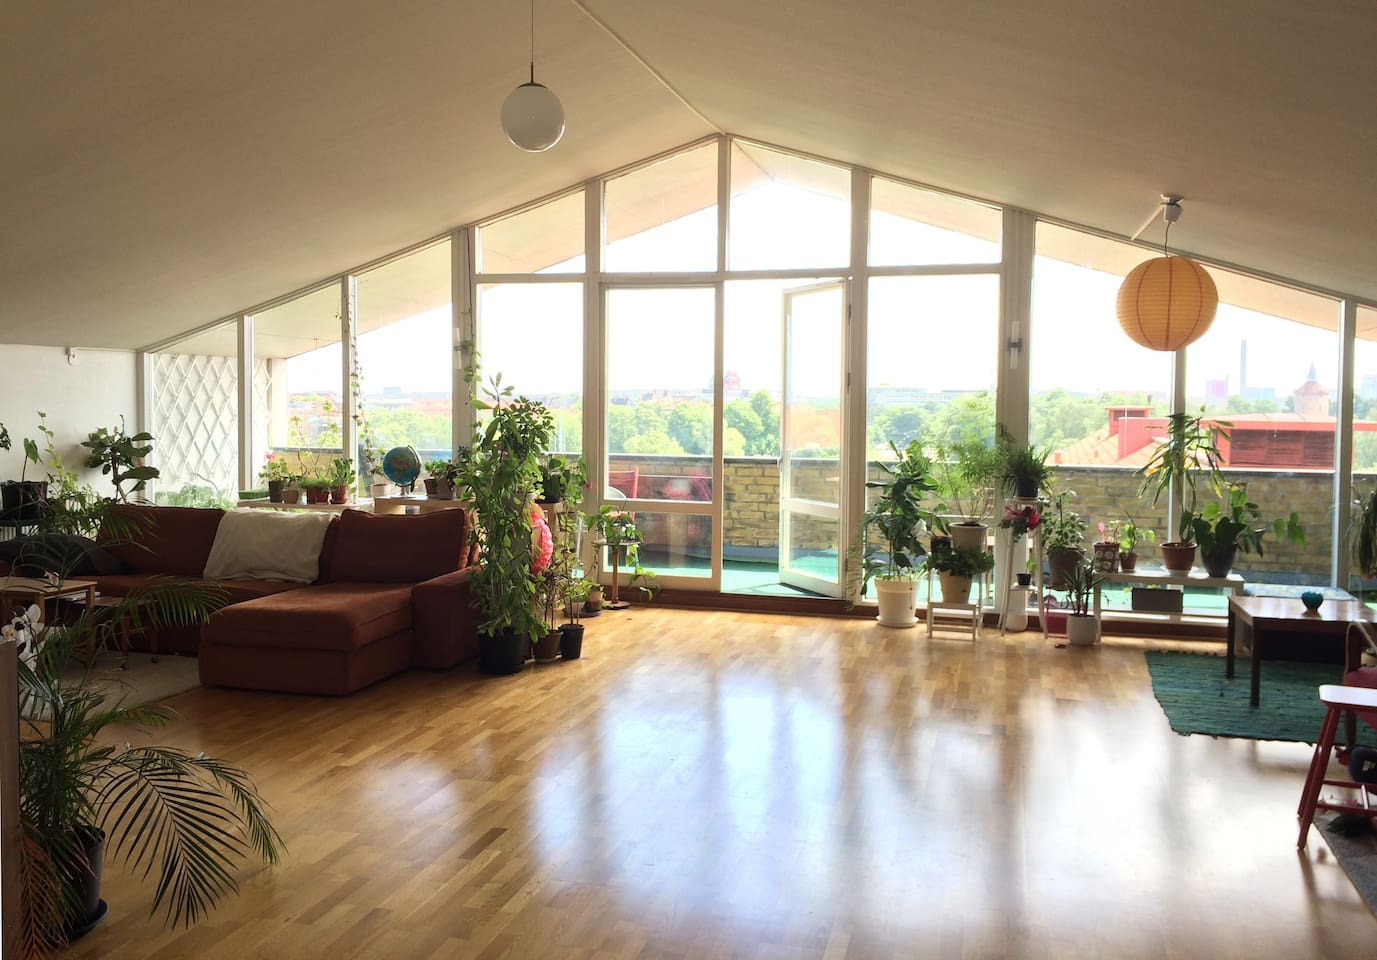 Large living room on the 9th floor with balcony and view over the park